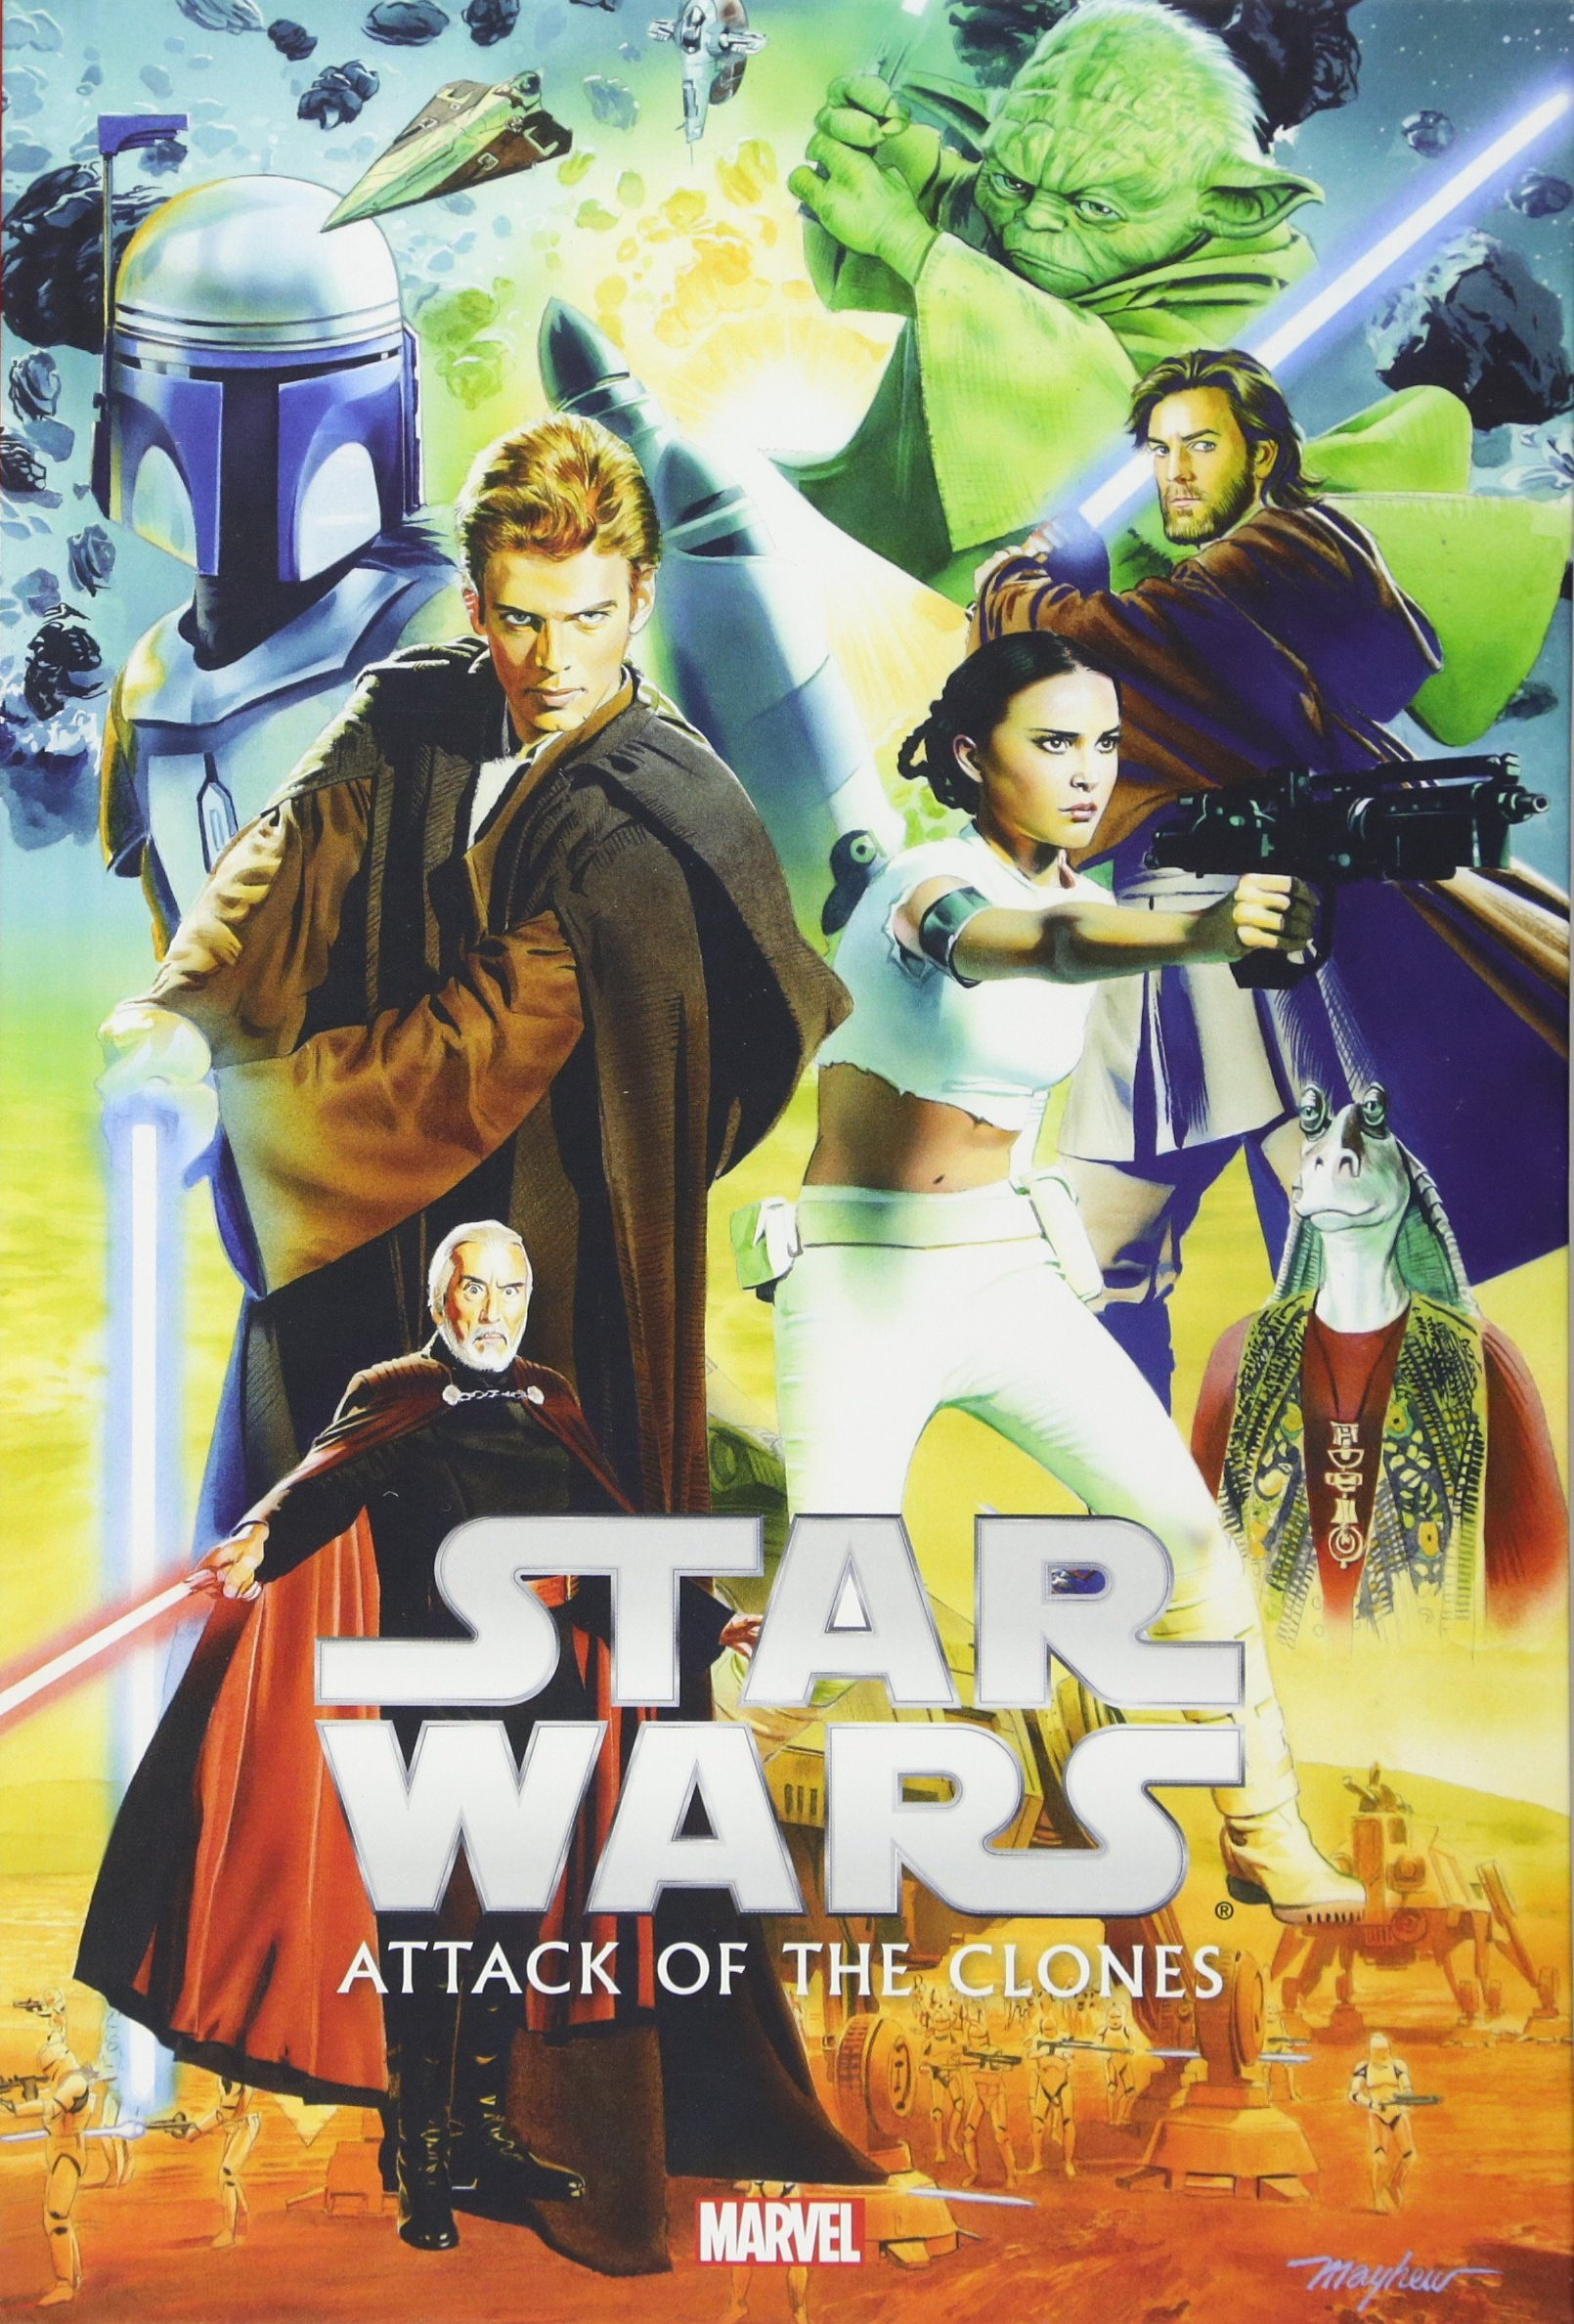 Star Wars Episode II: Attack of the Clones (Marvel Hardcover Edition)